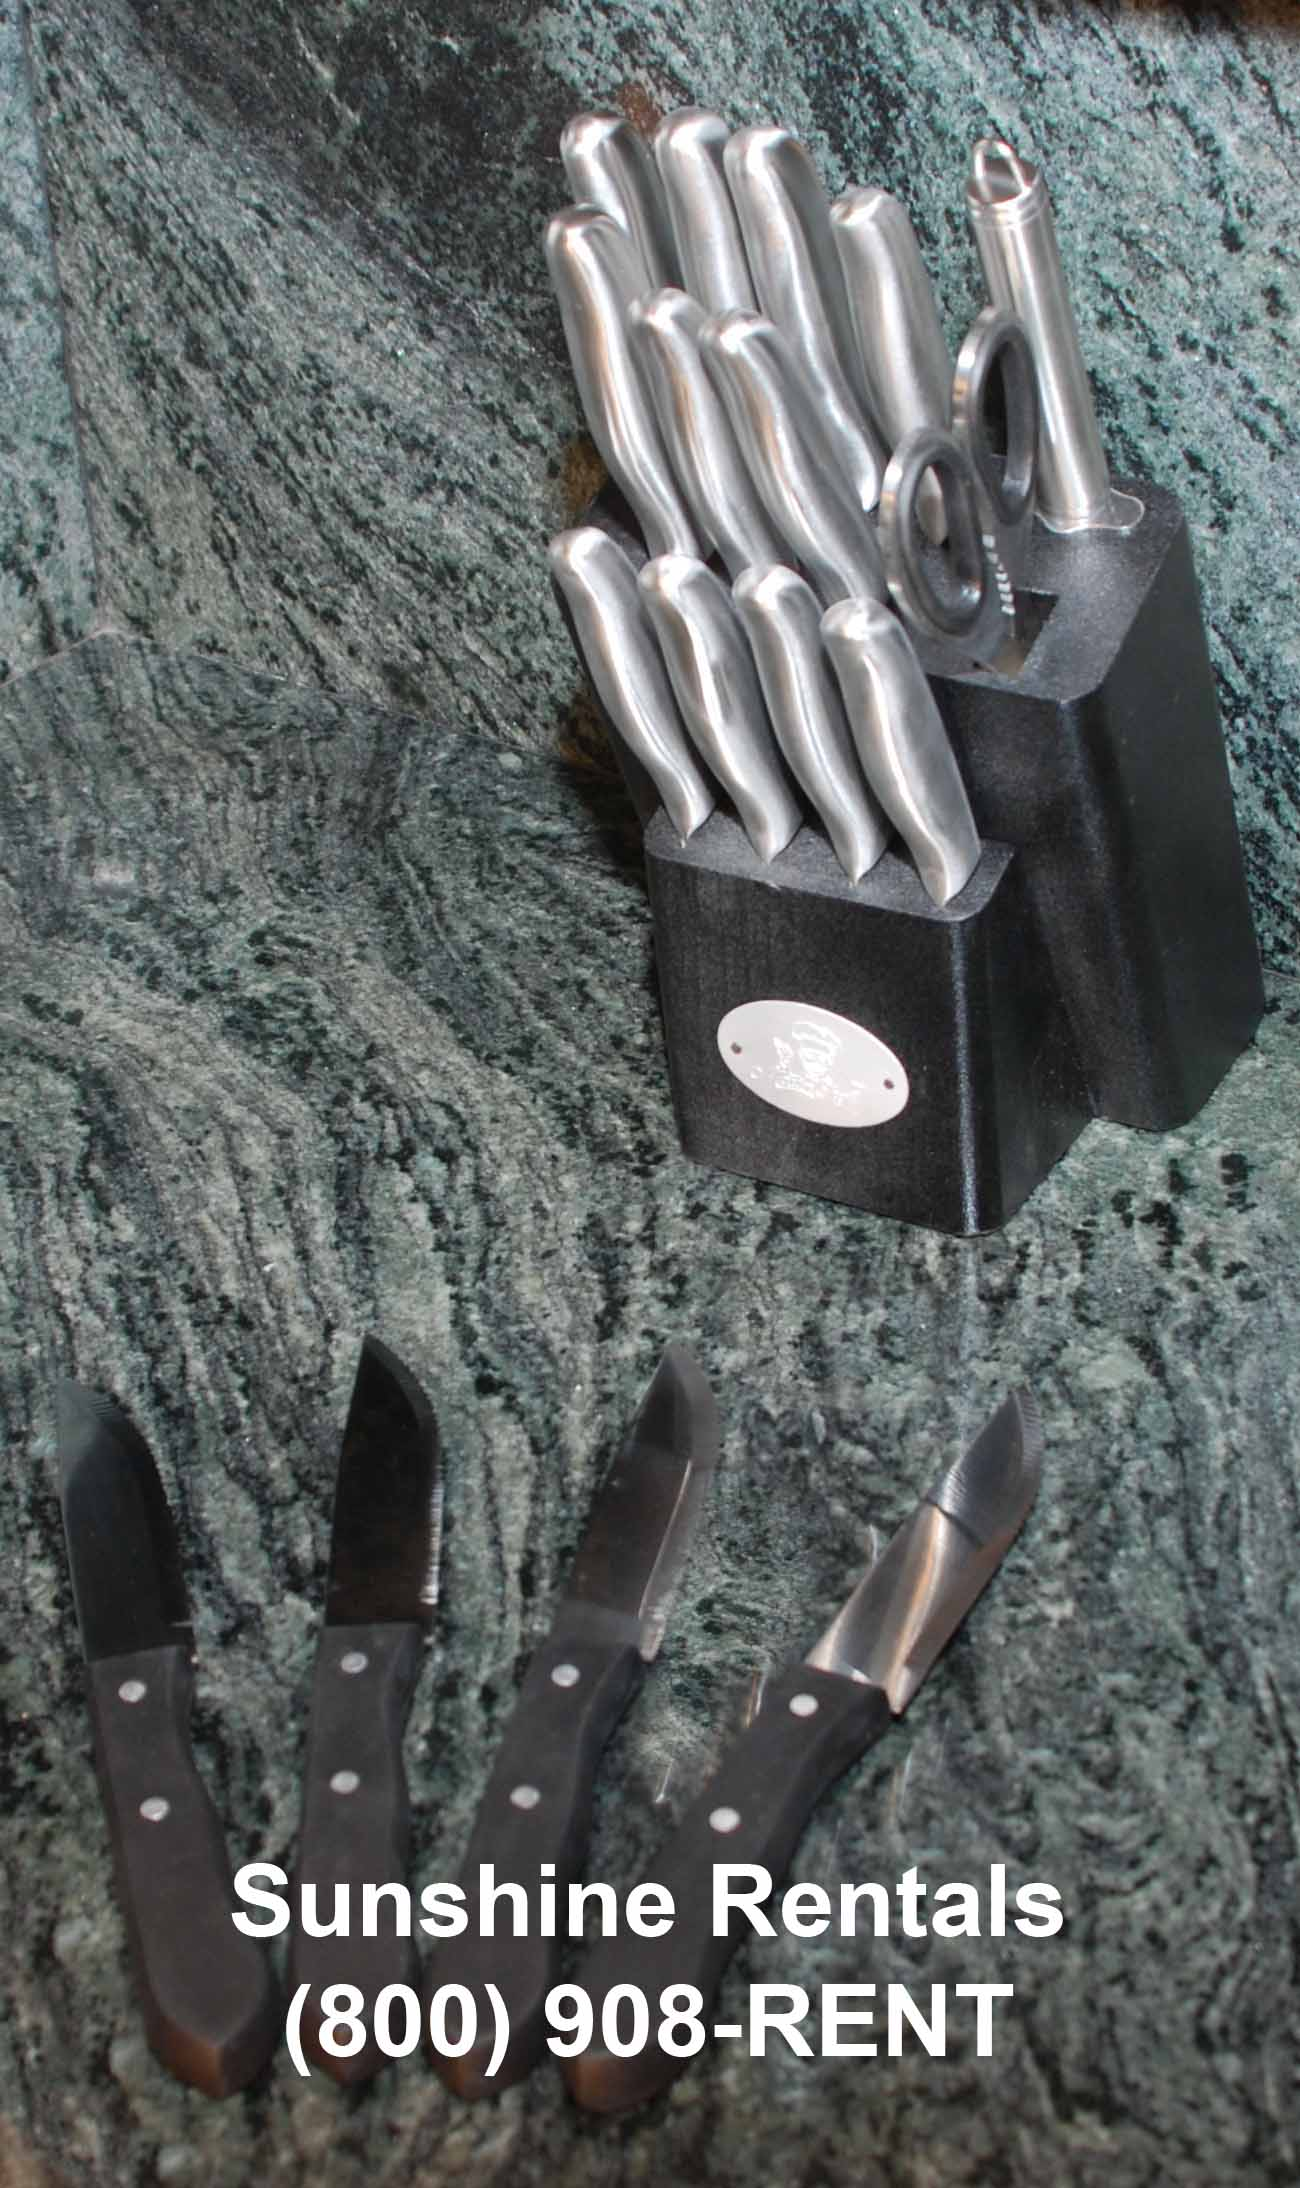 Sunshine Rentals Black Knife Block